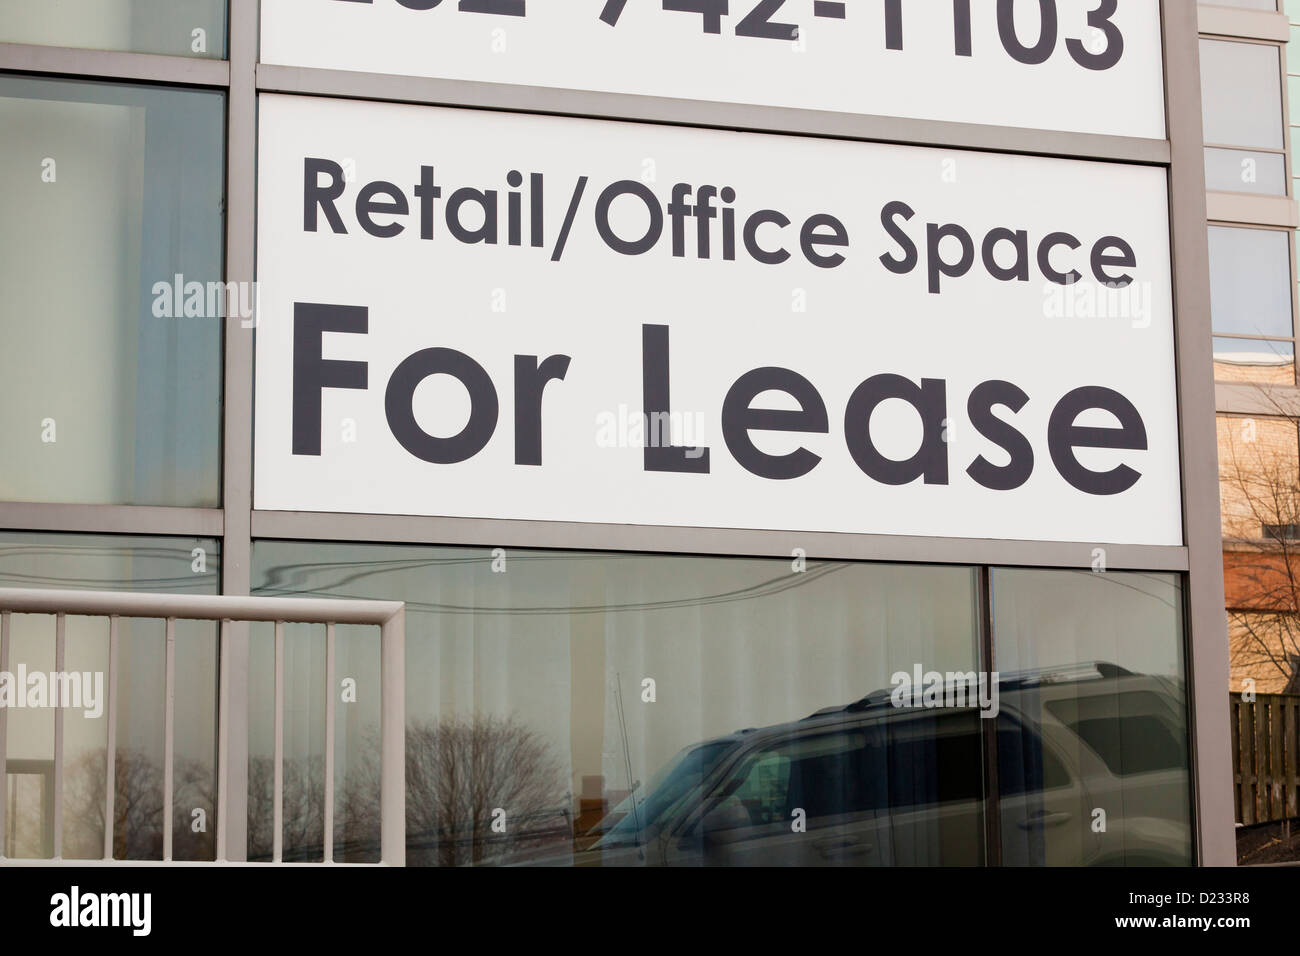 Retail / Office space for lease sign - Stock Image